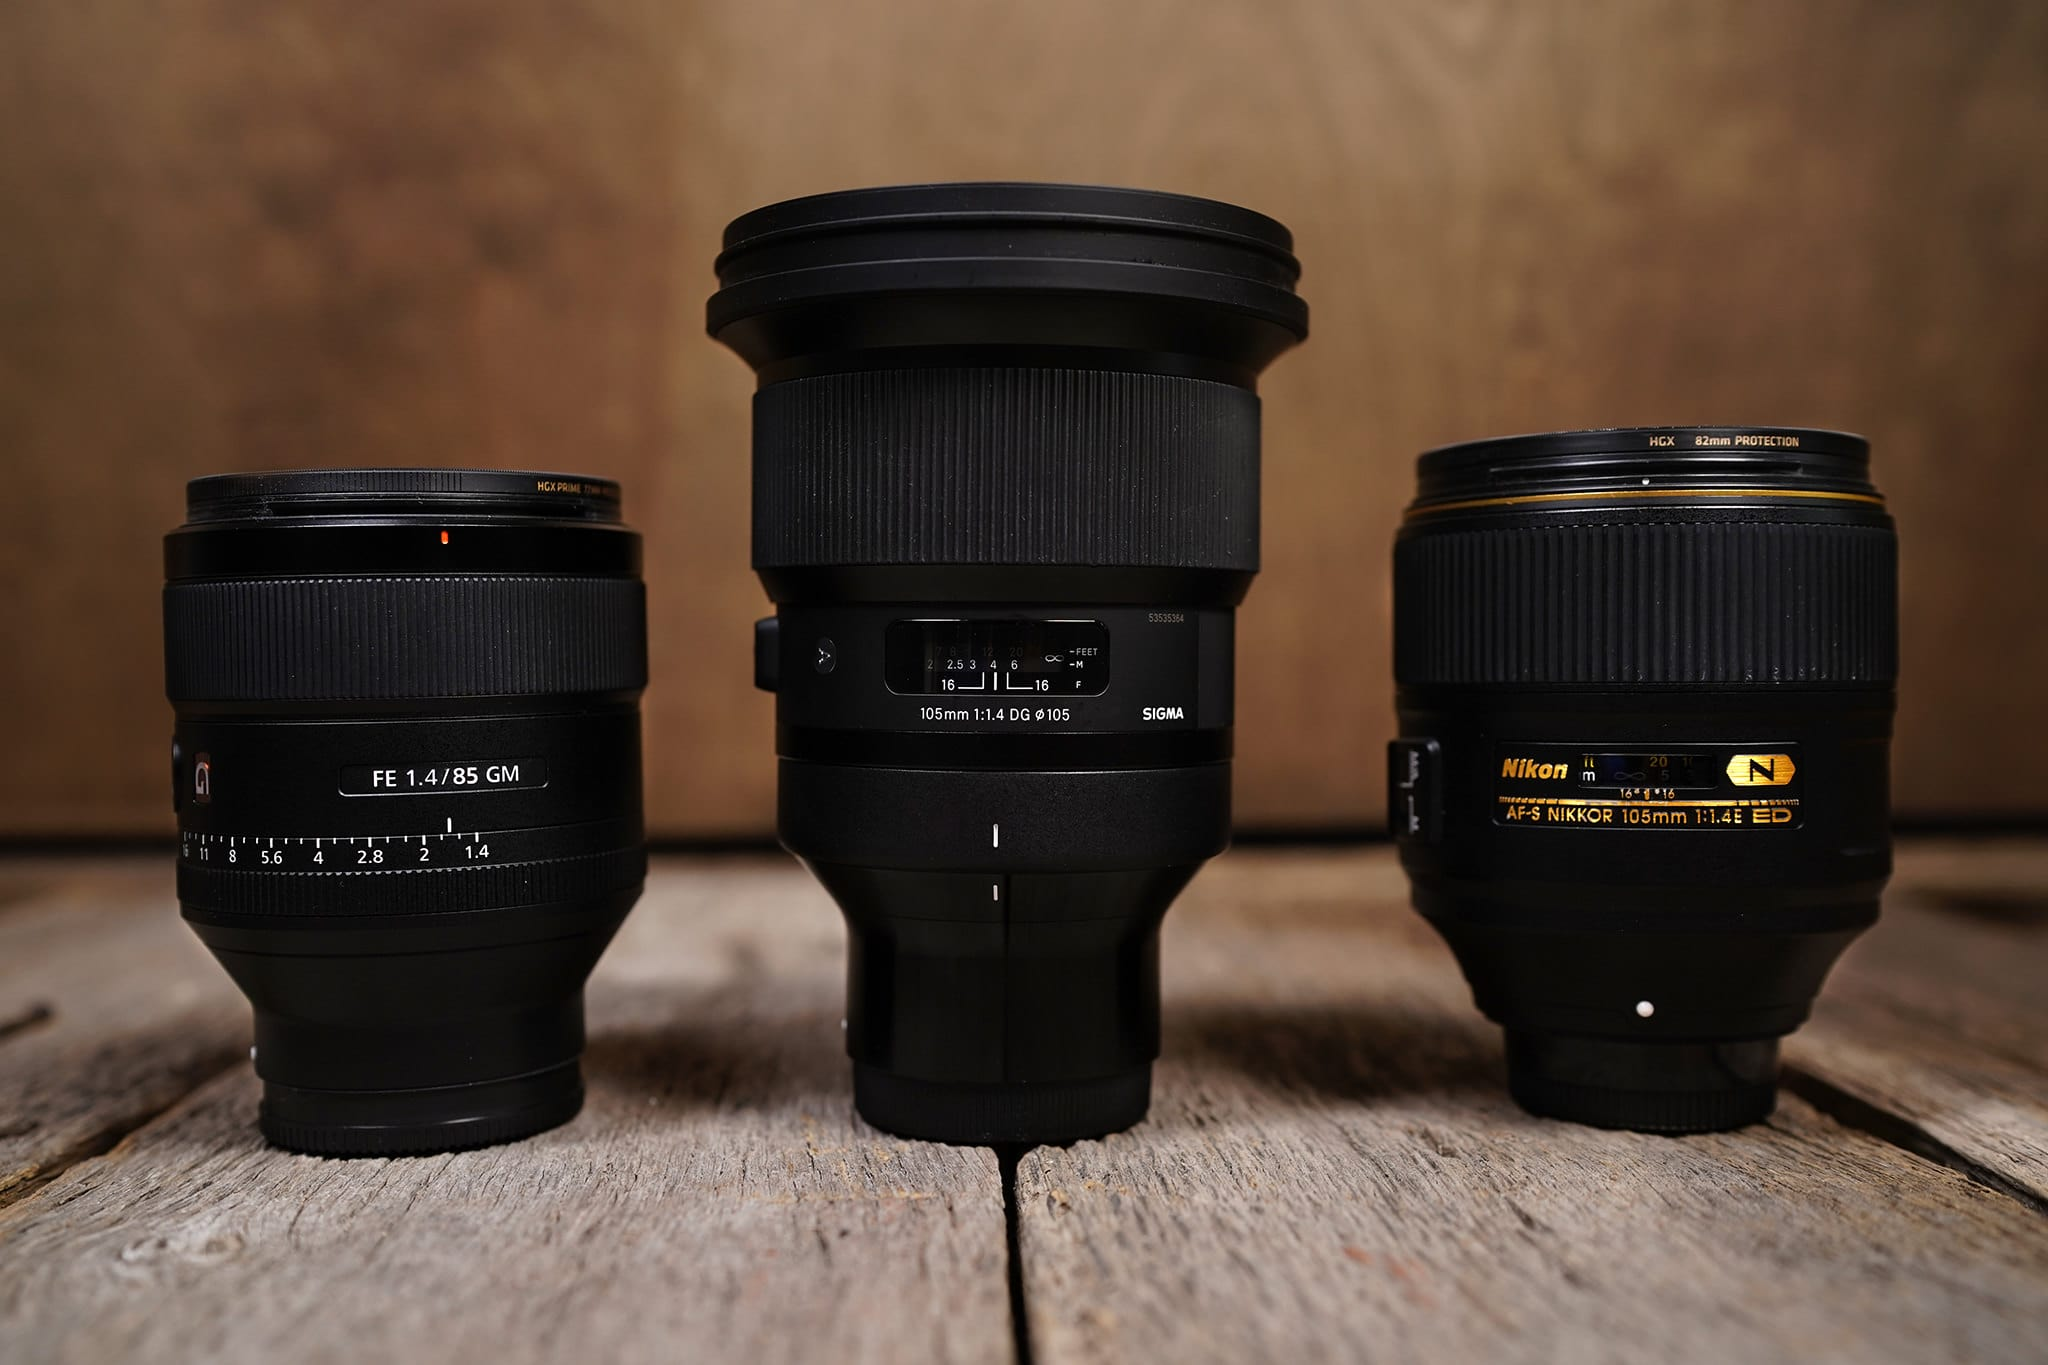 Lens Comparison to 85mm f/1.4, 105mm f/1.4, and 105